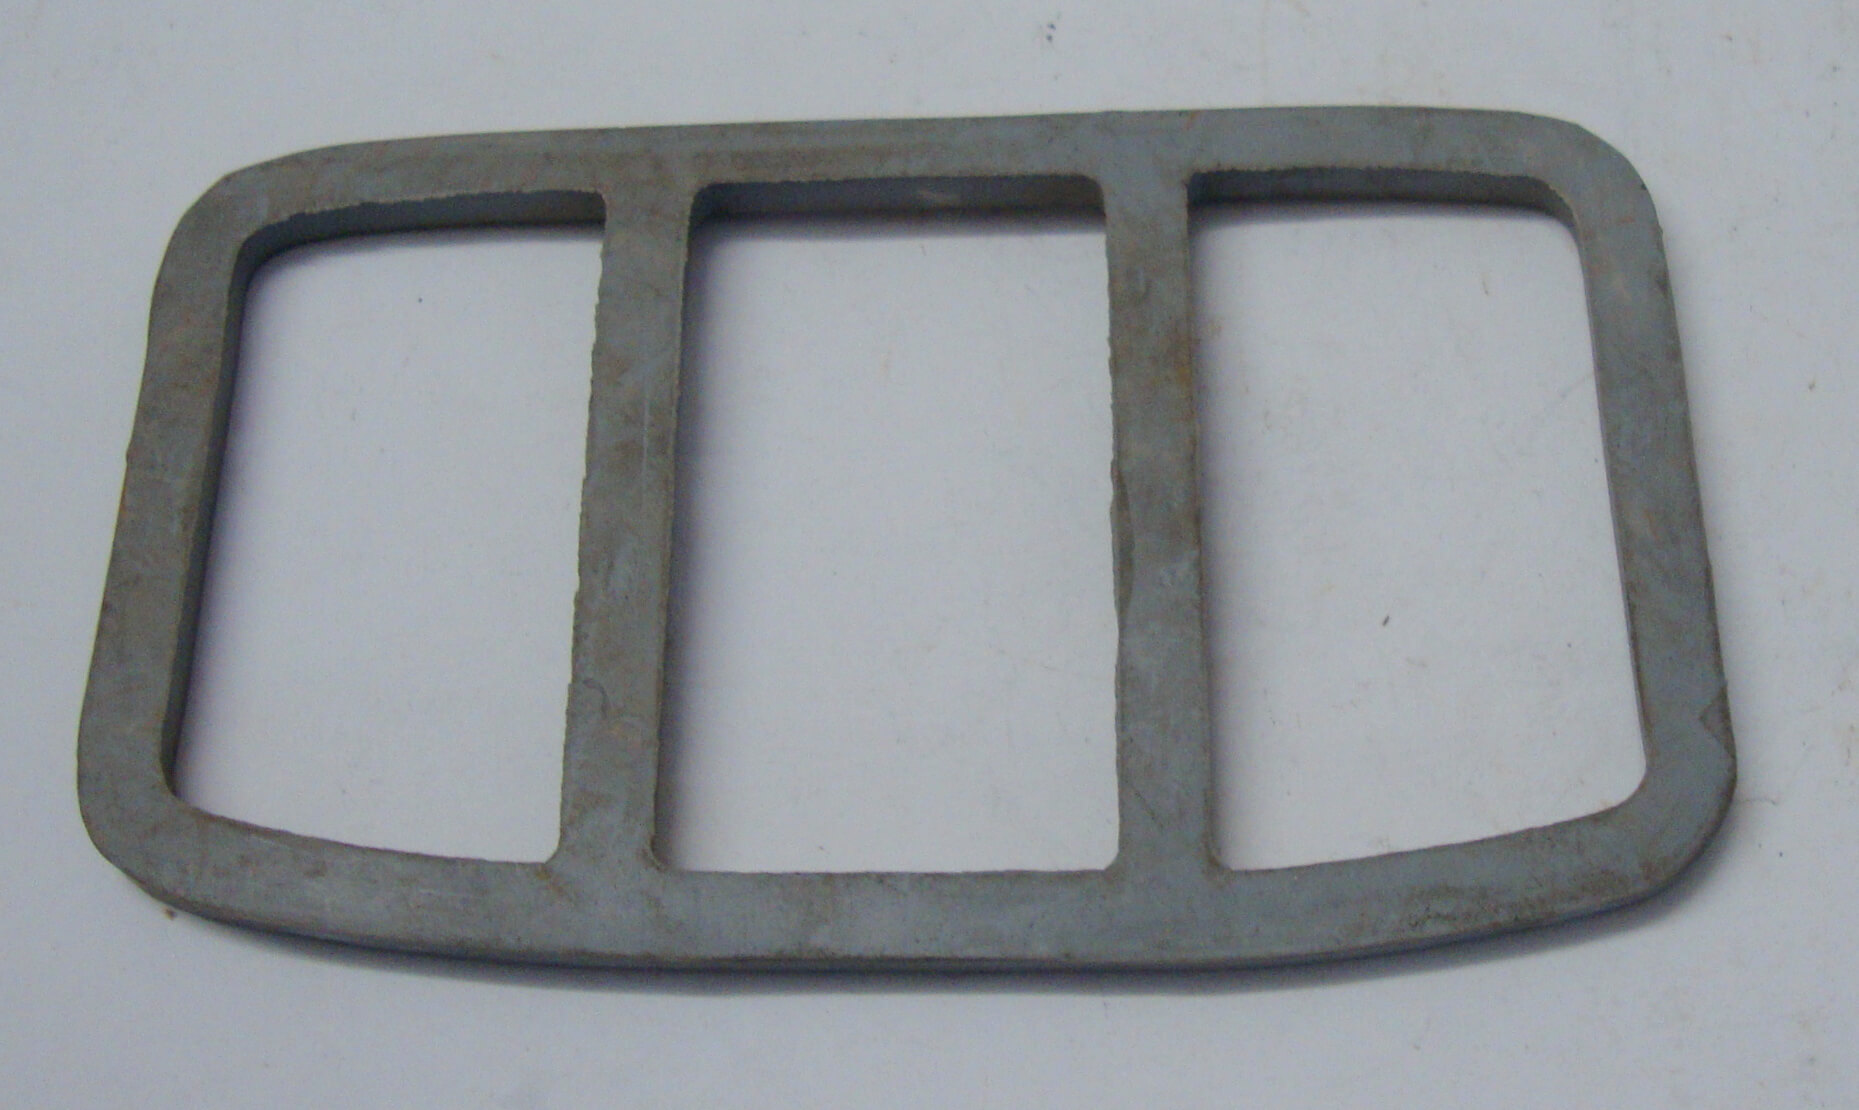 Gasket for taillight glas SIEM, Ape